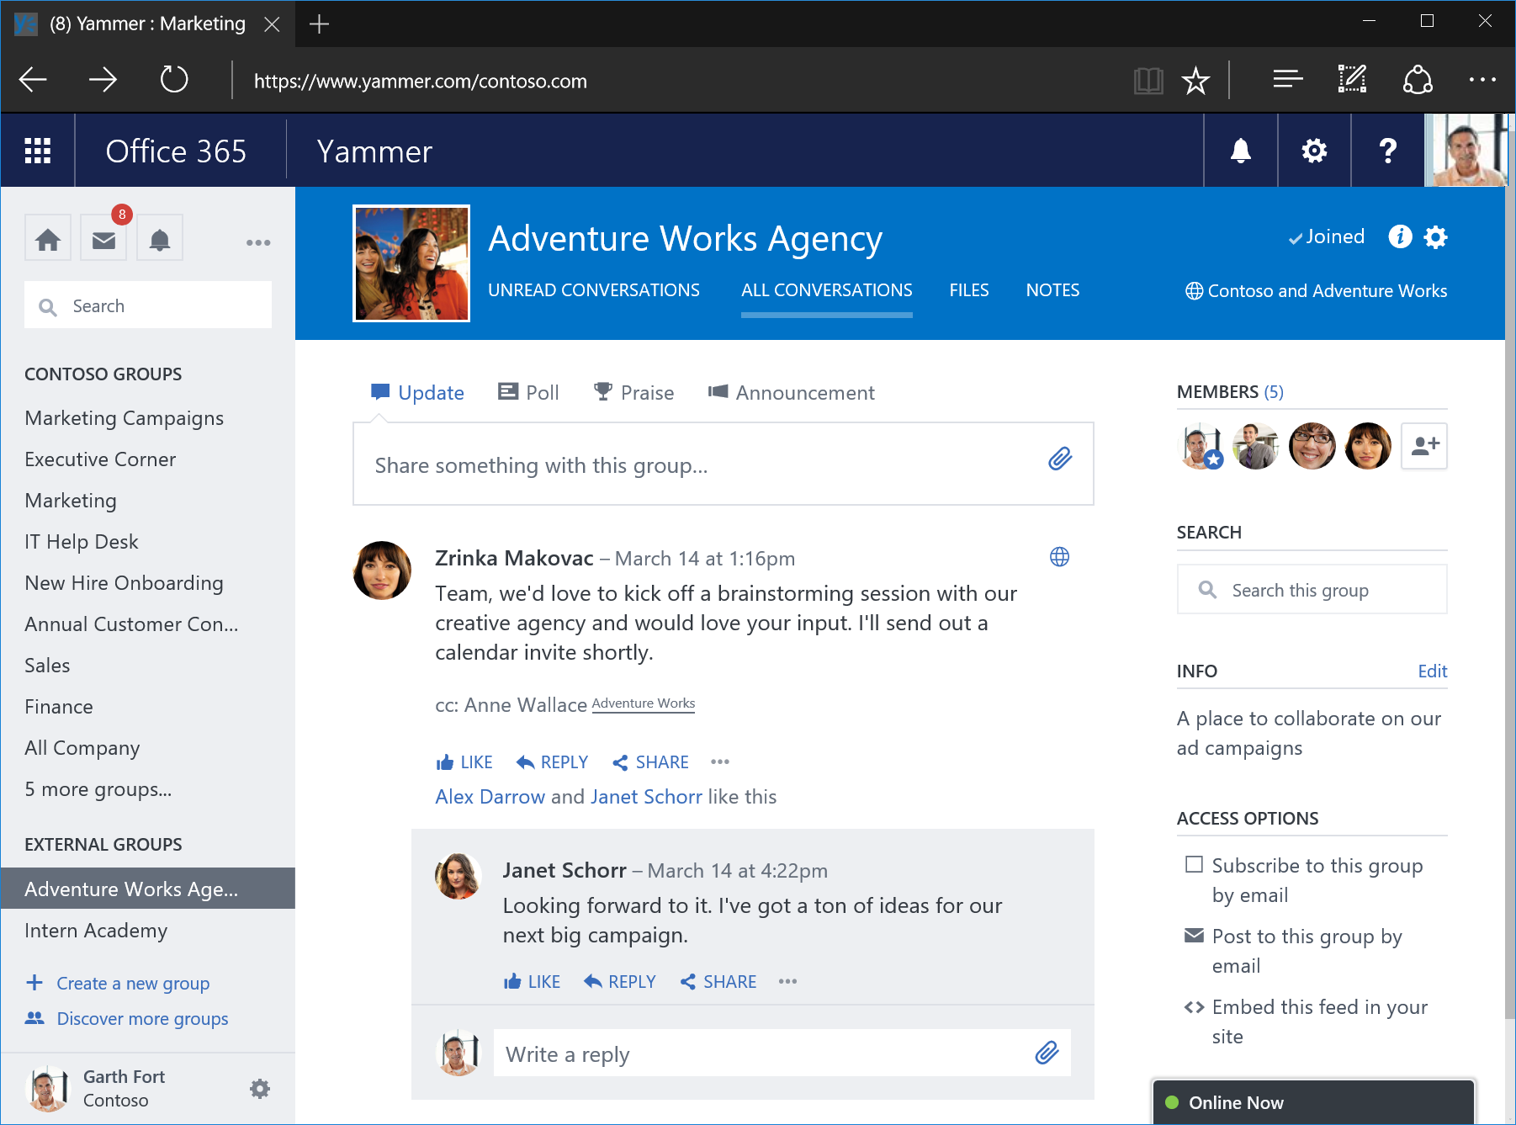 Yammer external groups 2